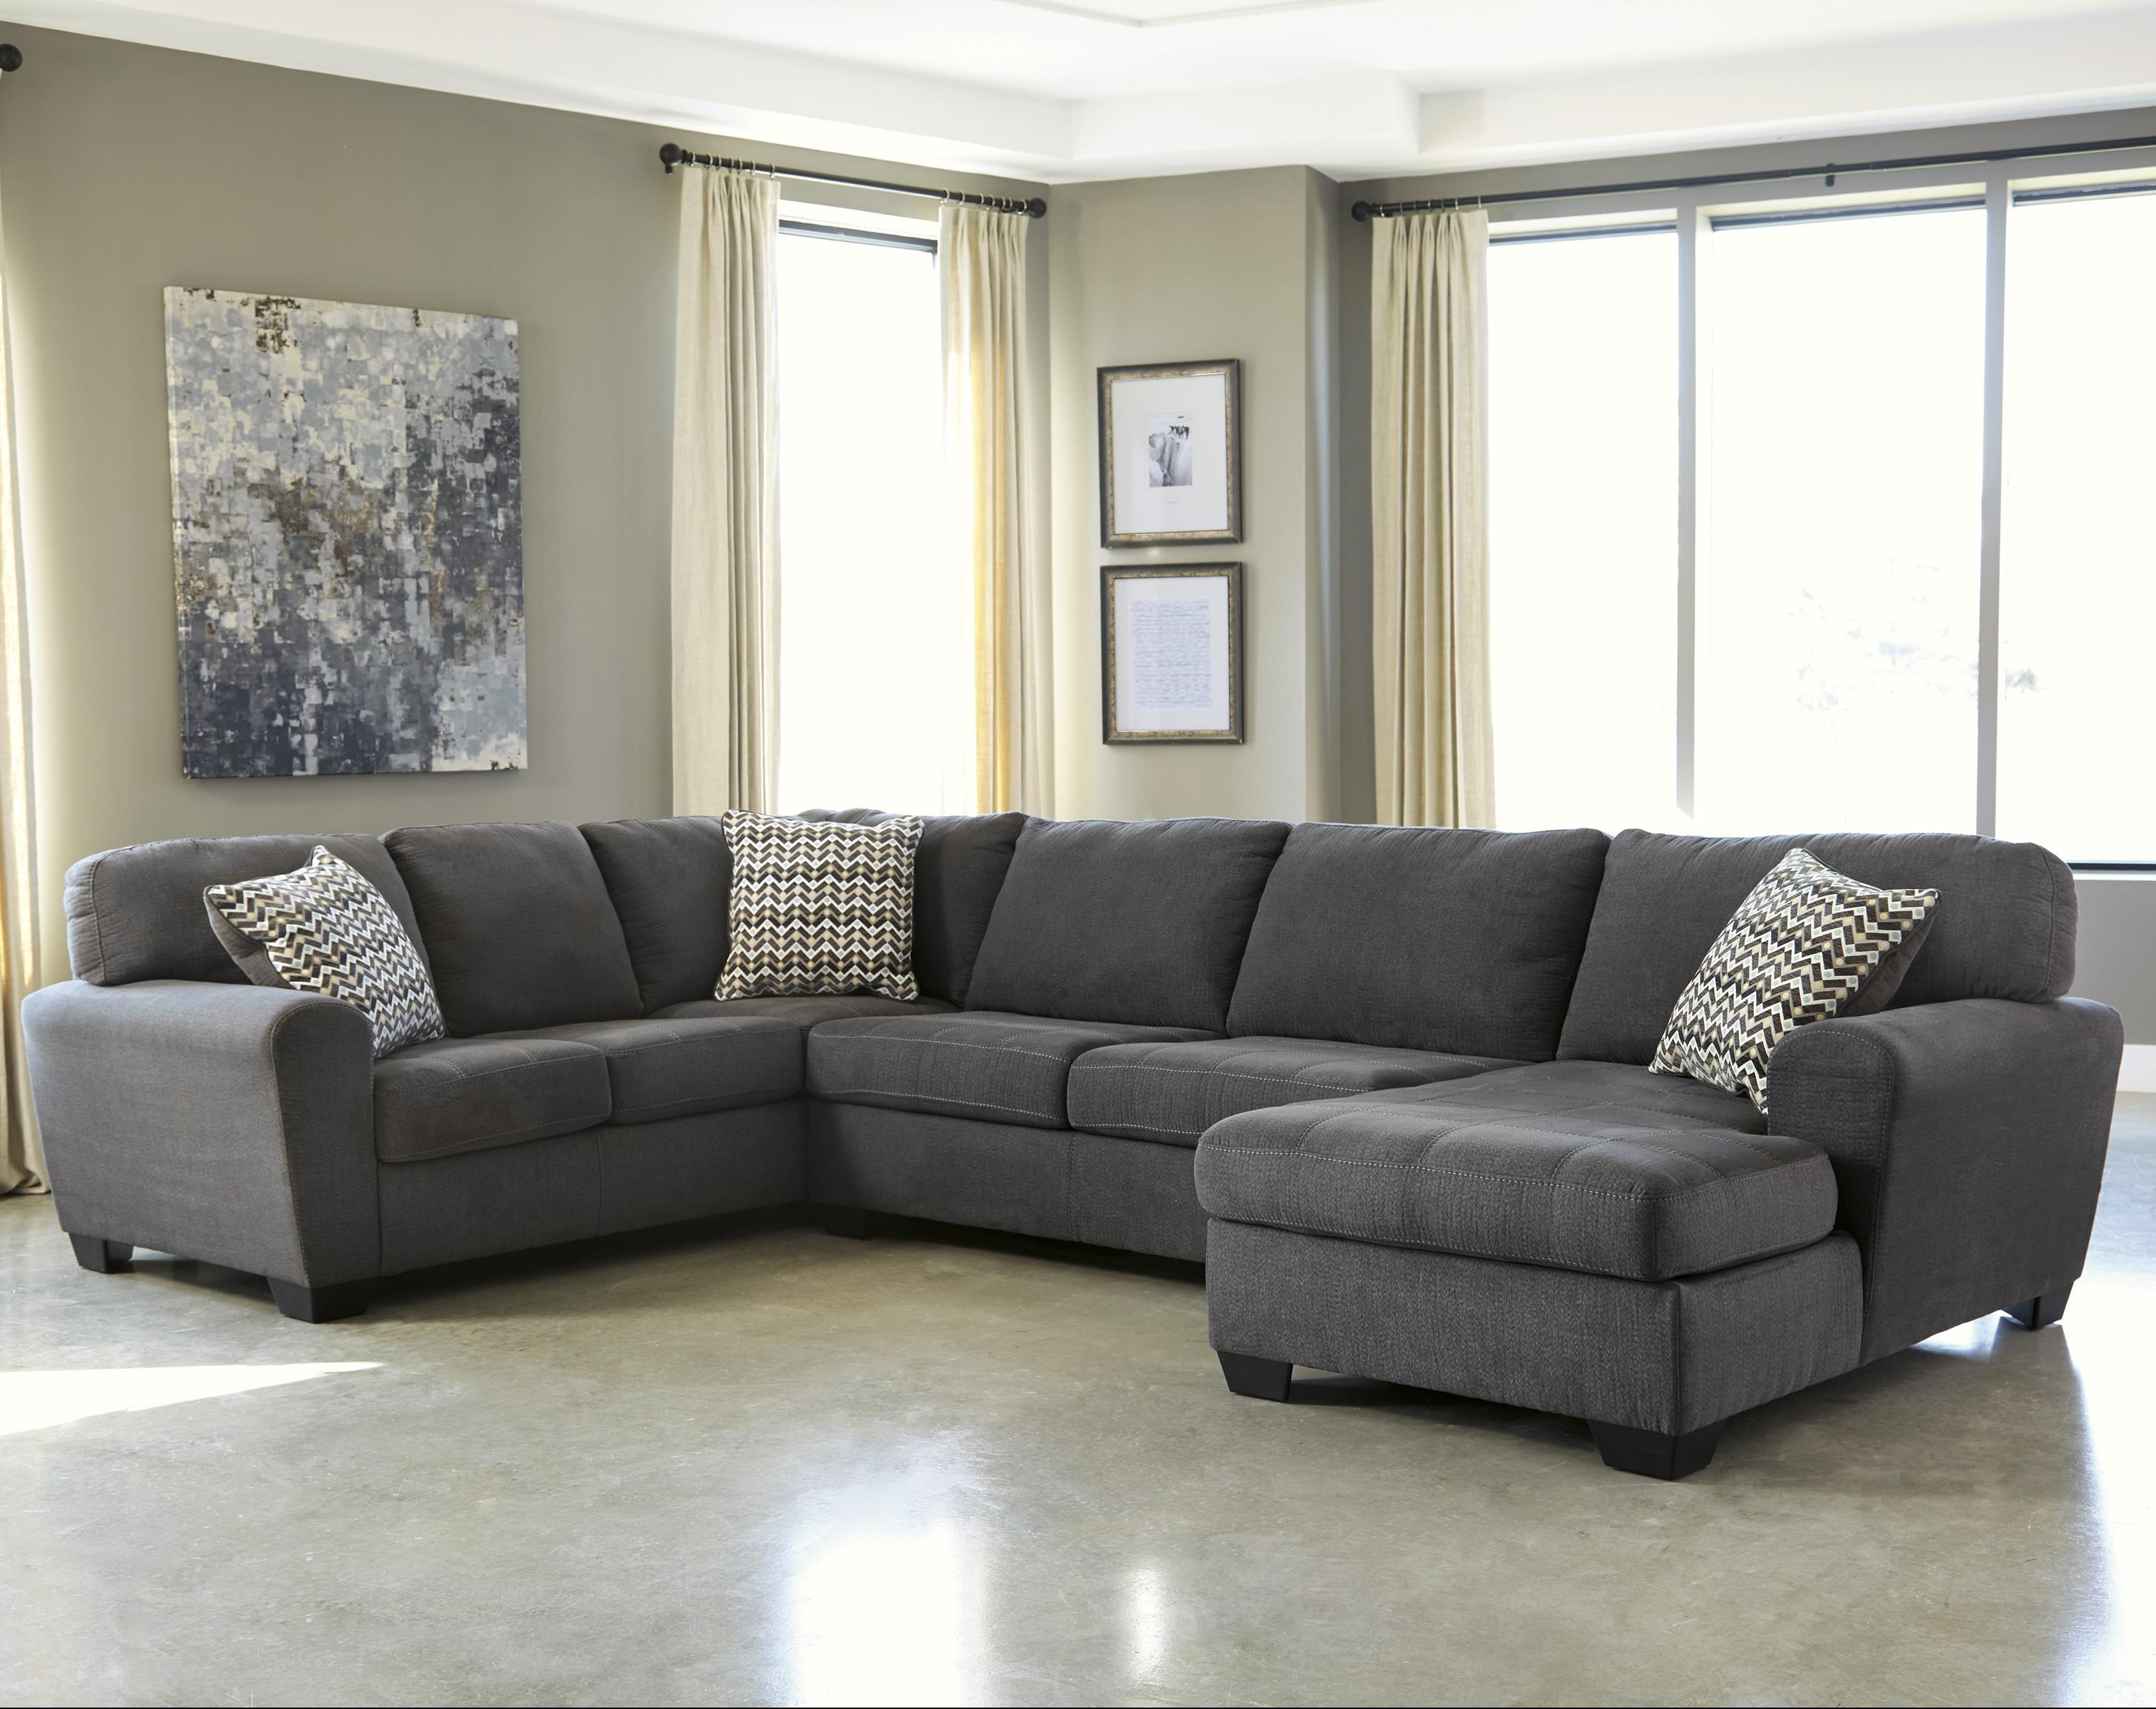 sorenton 3 piece sectional with chaise